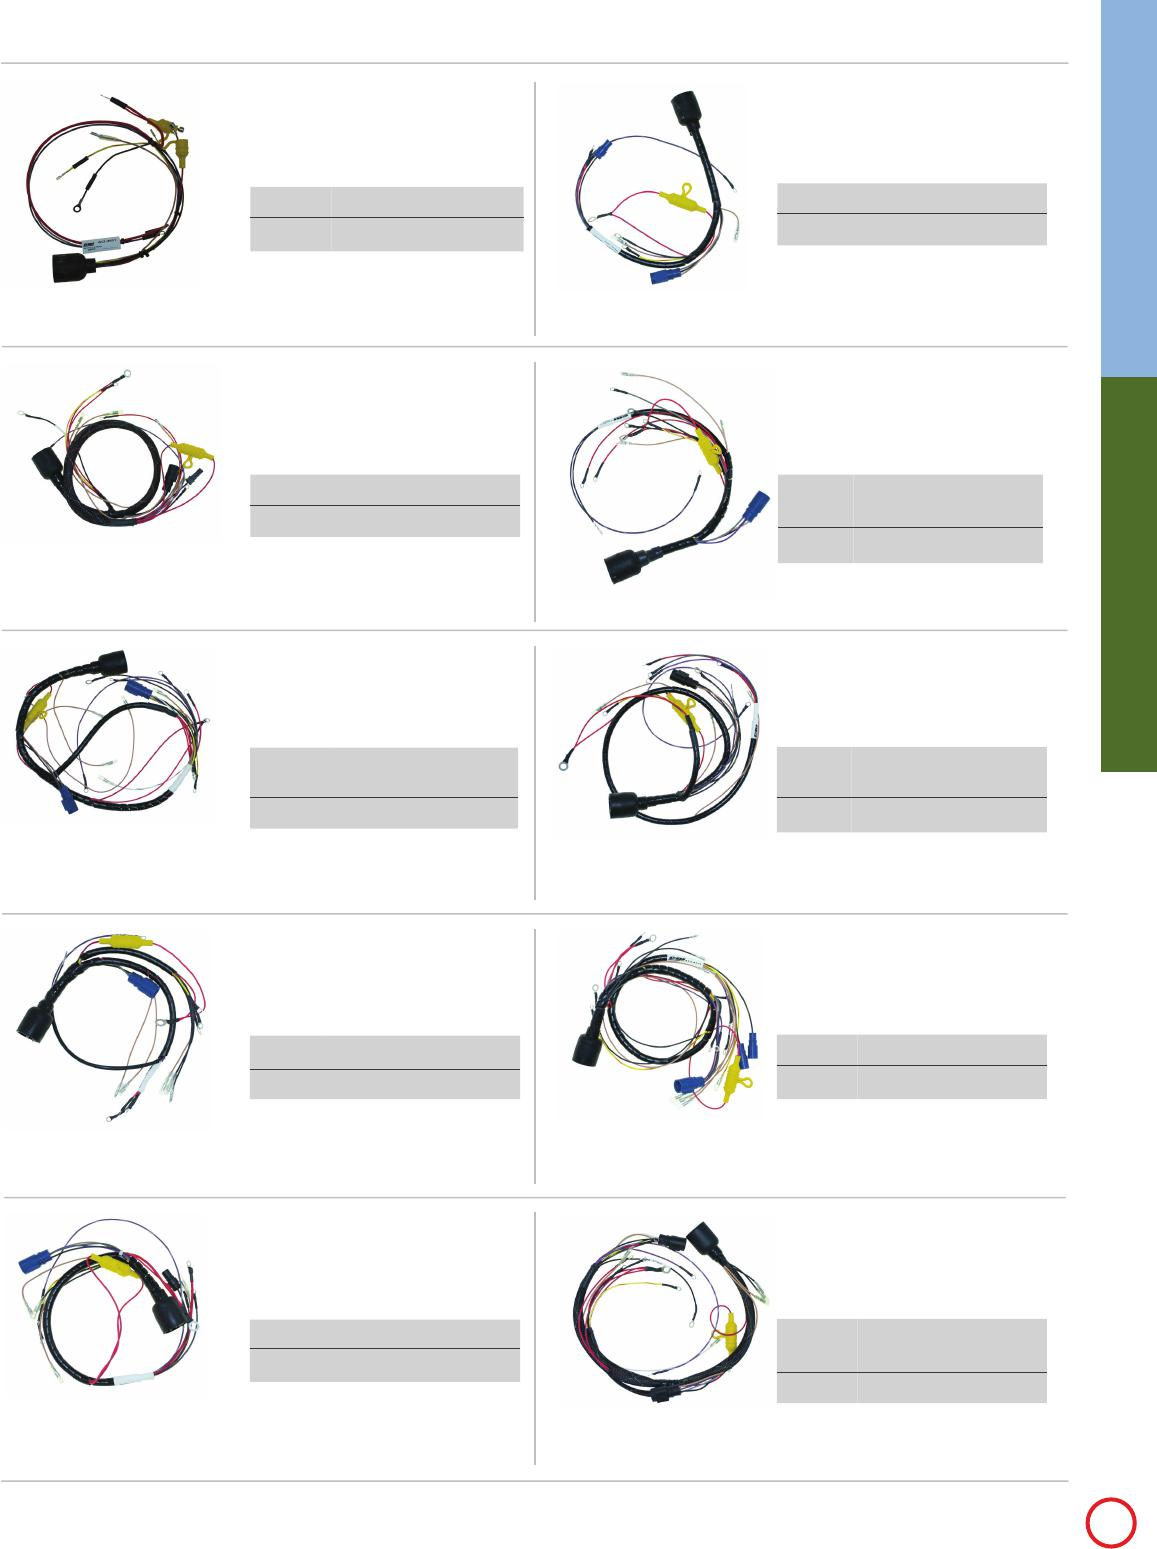 Wiring Harnesses Cont P 67 Johnson Evinrude Cdi Harness For Outboards Electronics Catalog